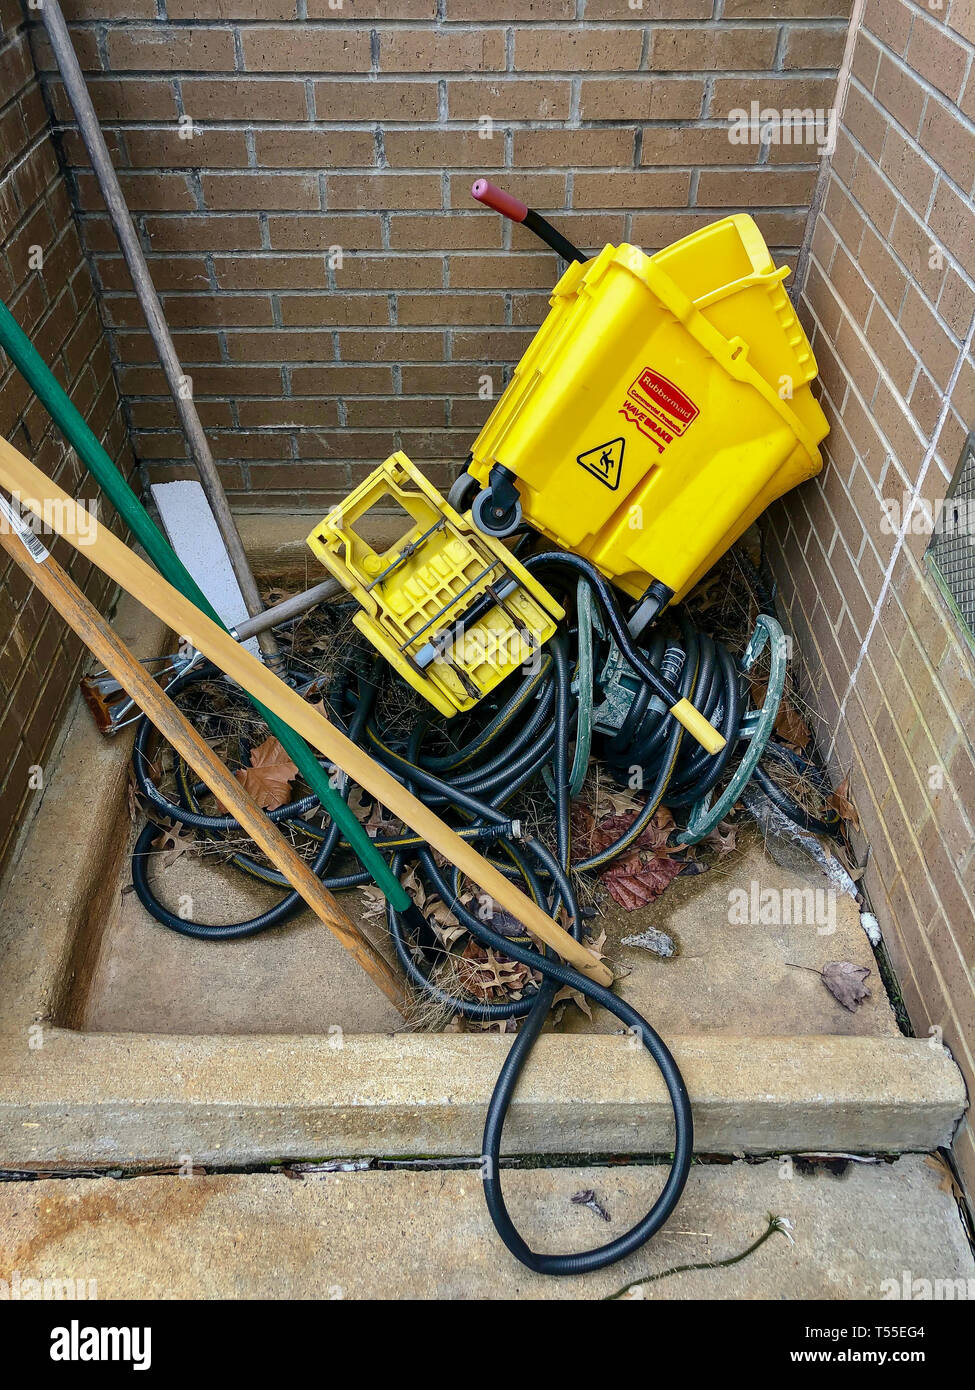 Outdoor Janitorial station in equipment disorderly Stock Photo